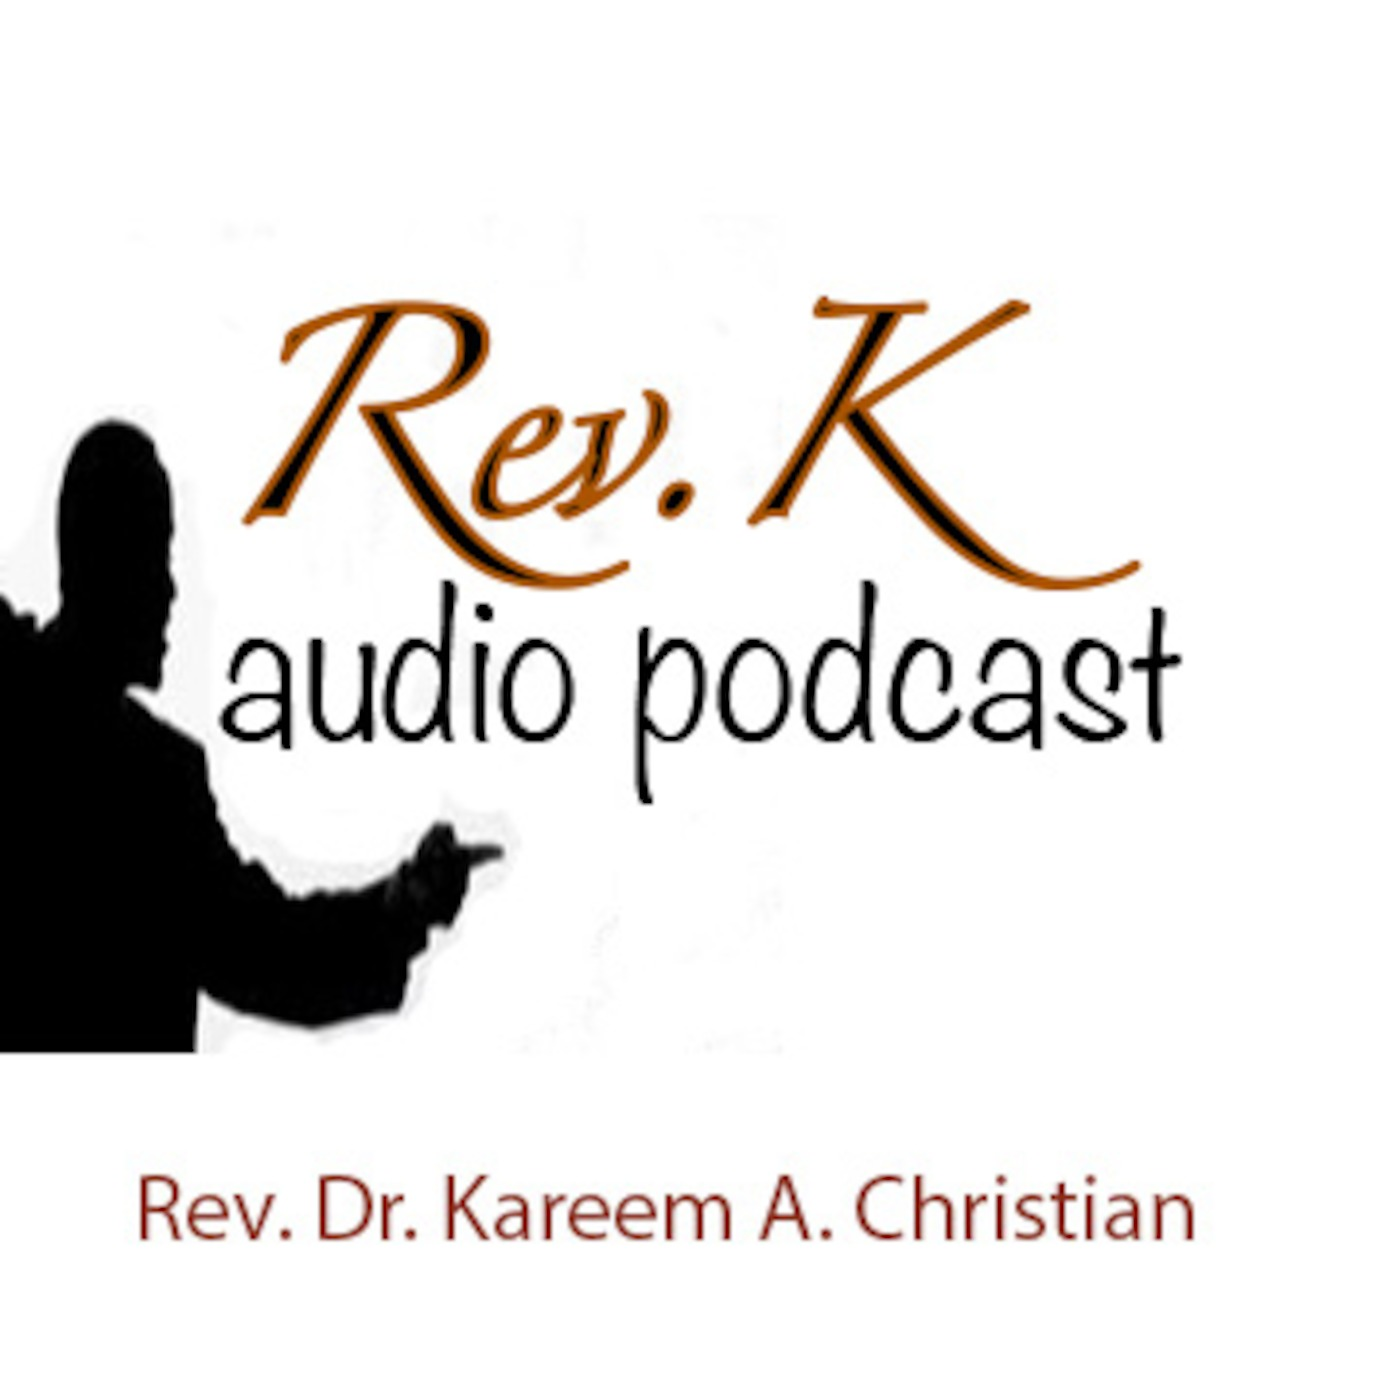 Rev. Dr. K. A. Christian's Podcast